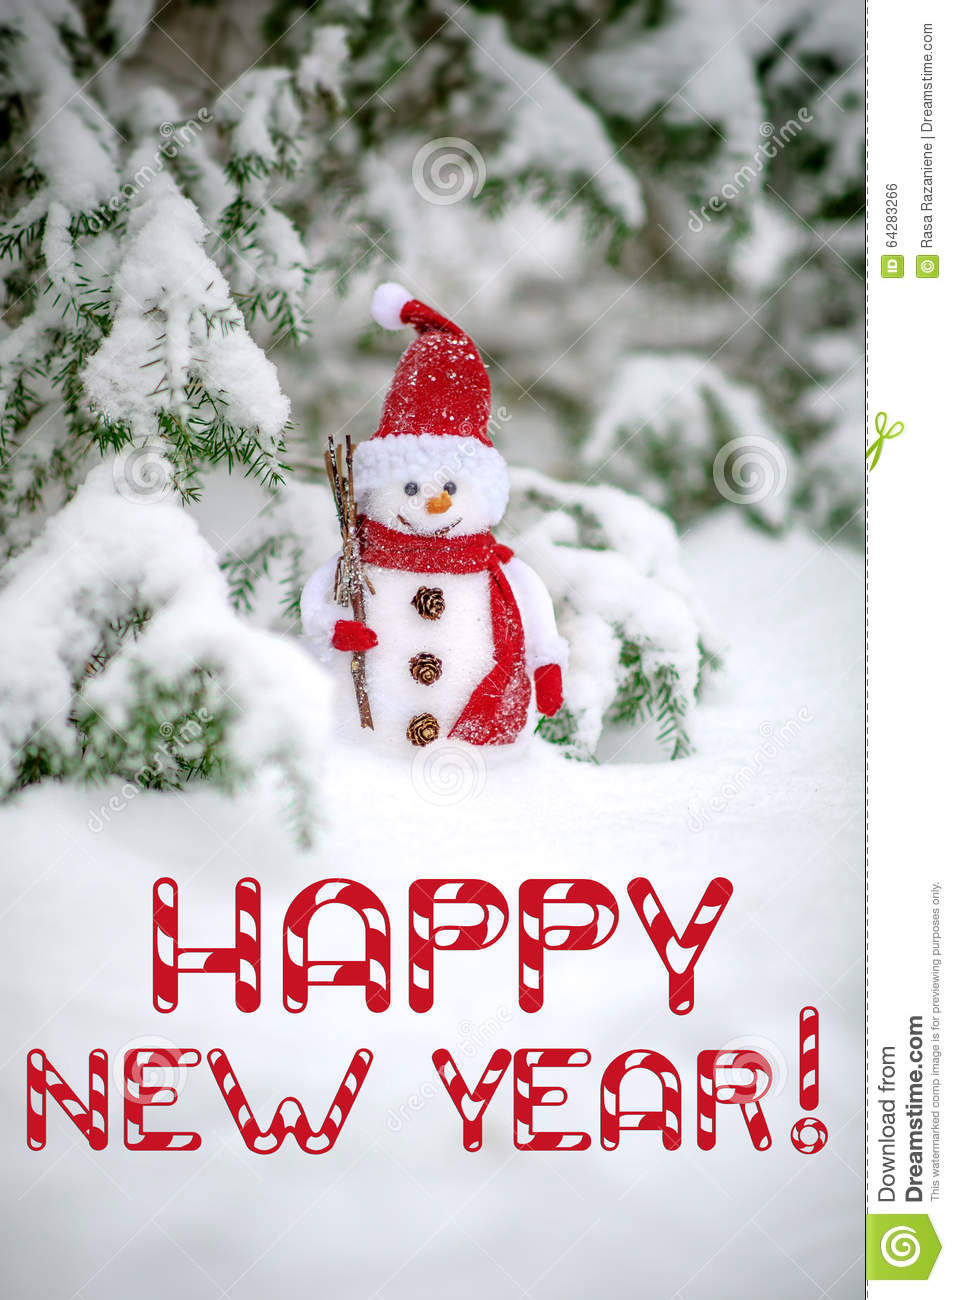 Happy New Year Greeting Card With Snowman Stock Photo ...